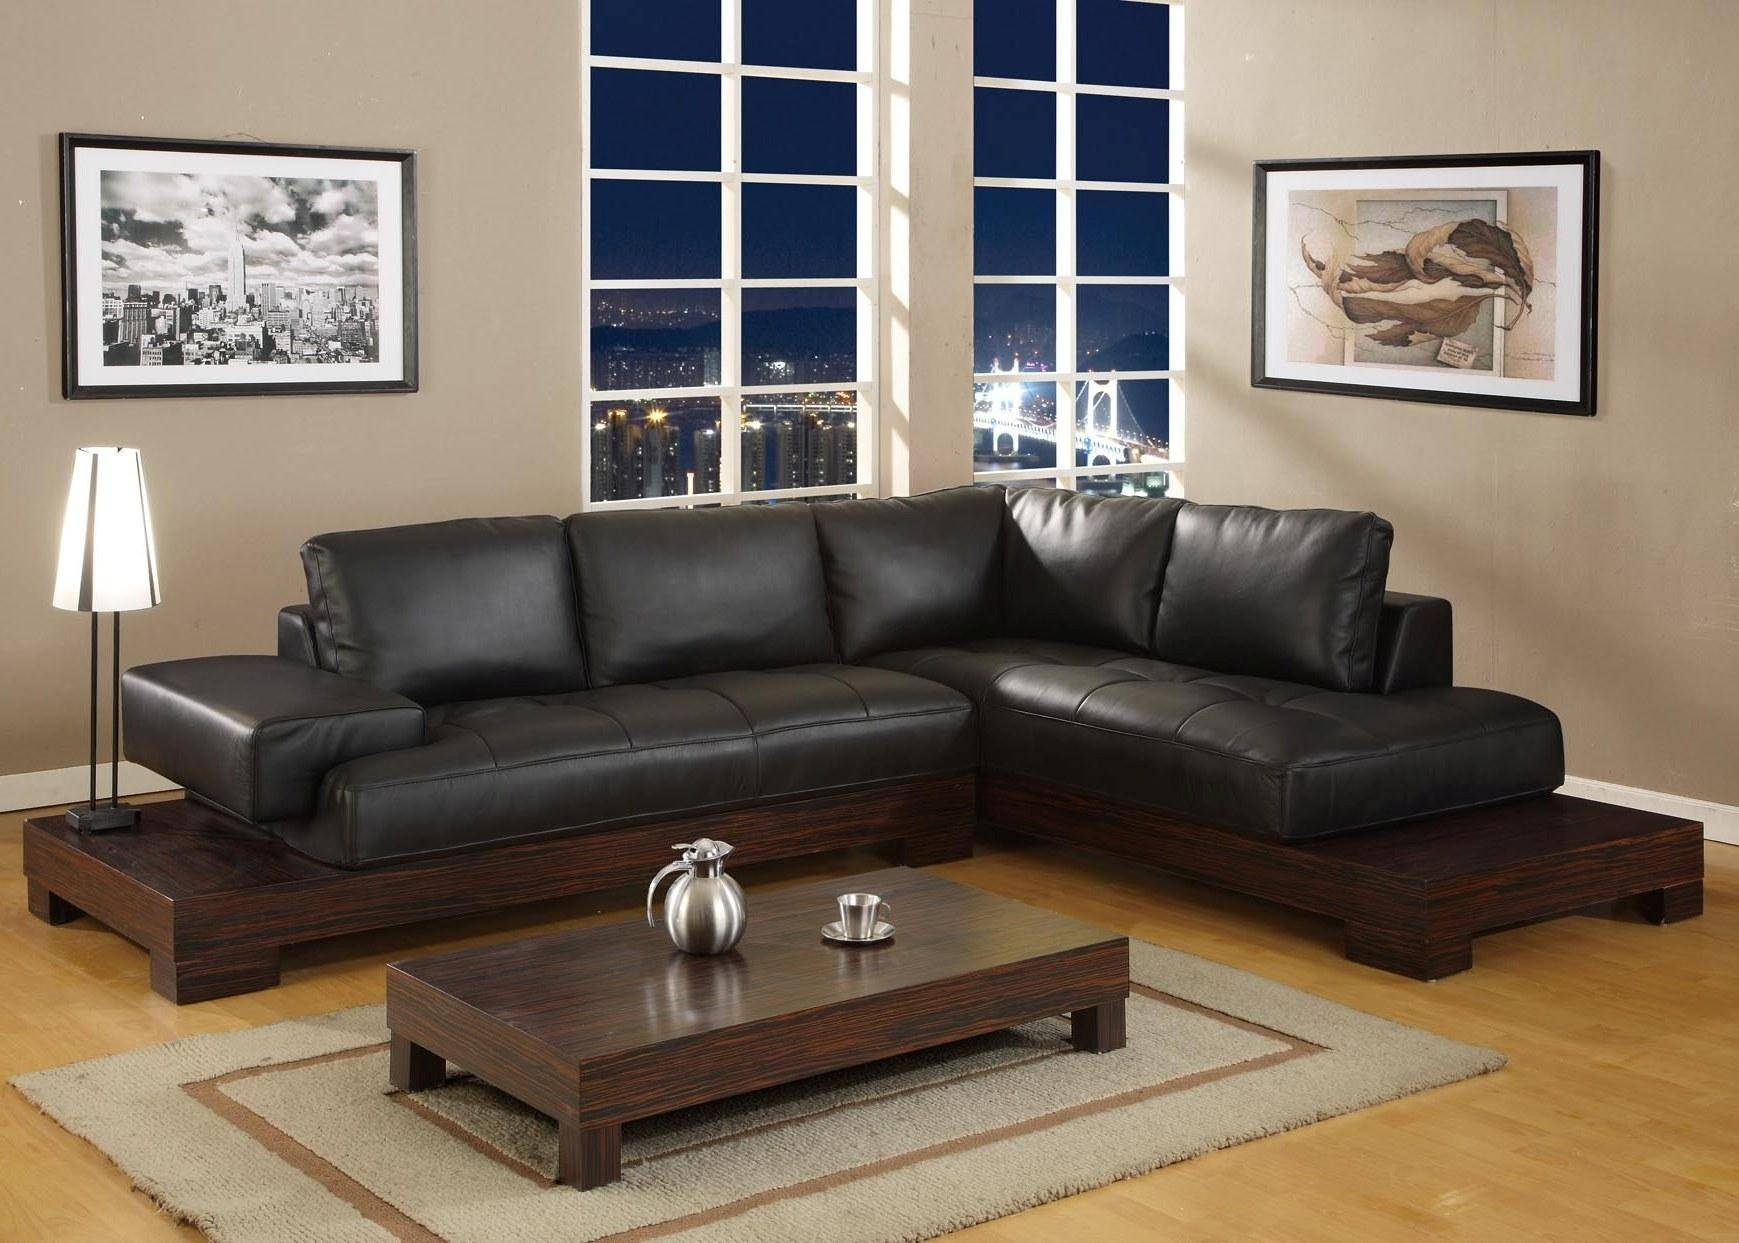 ☆▻ Sofa : 22 Contemporary Black Leather Living Room Set Black With Contemporary Black Leather Sofas (View 30 of 30)